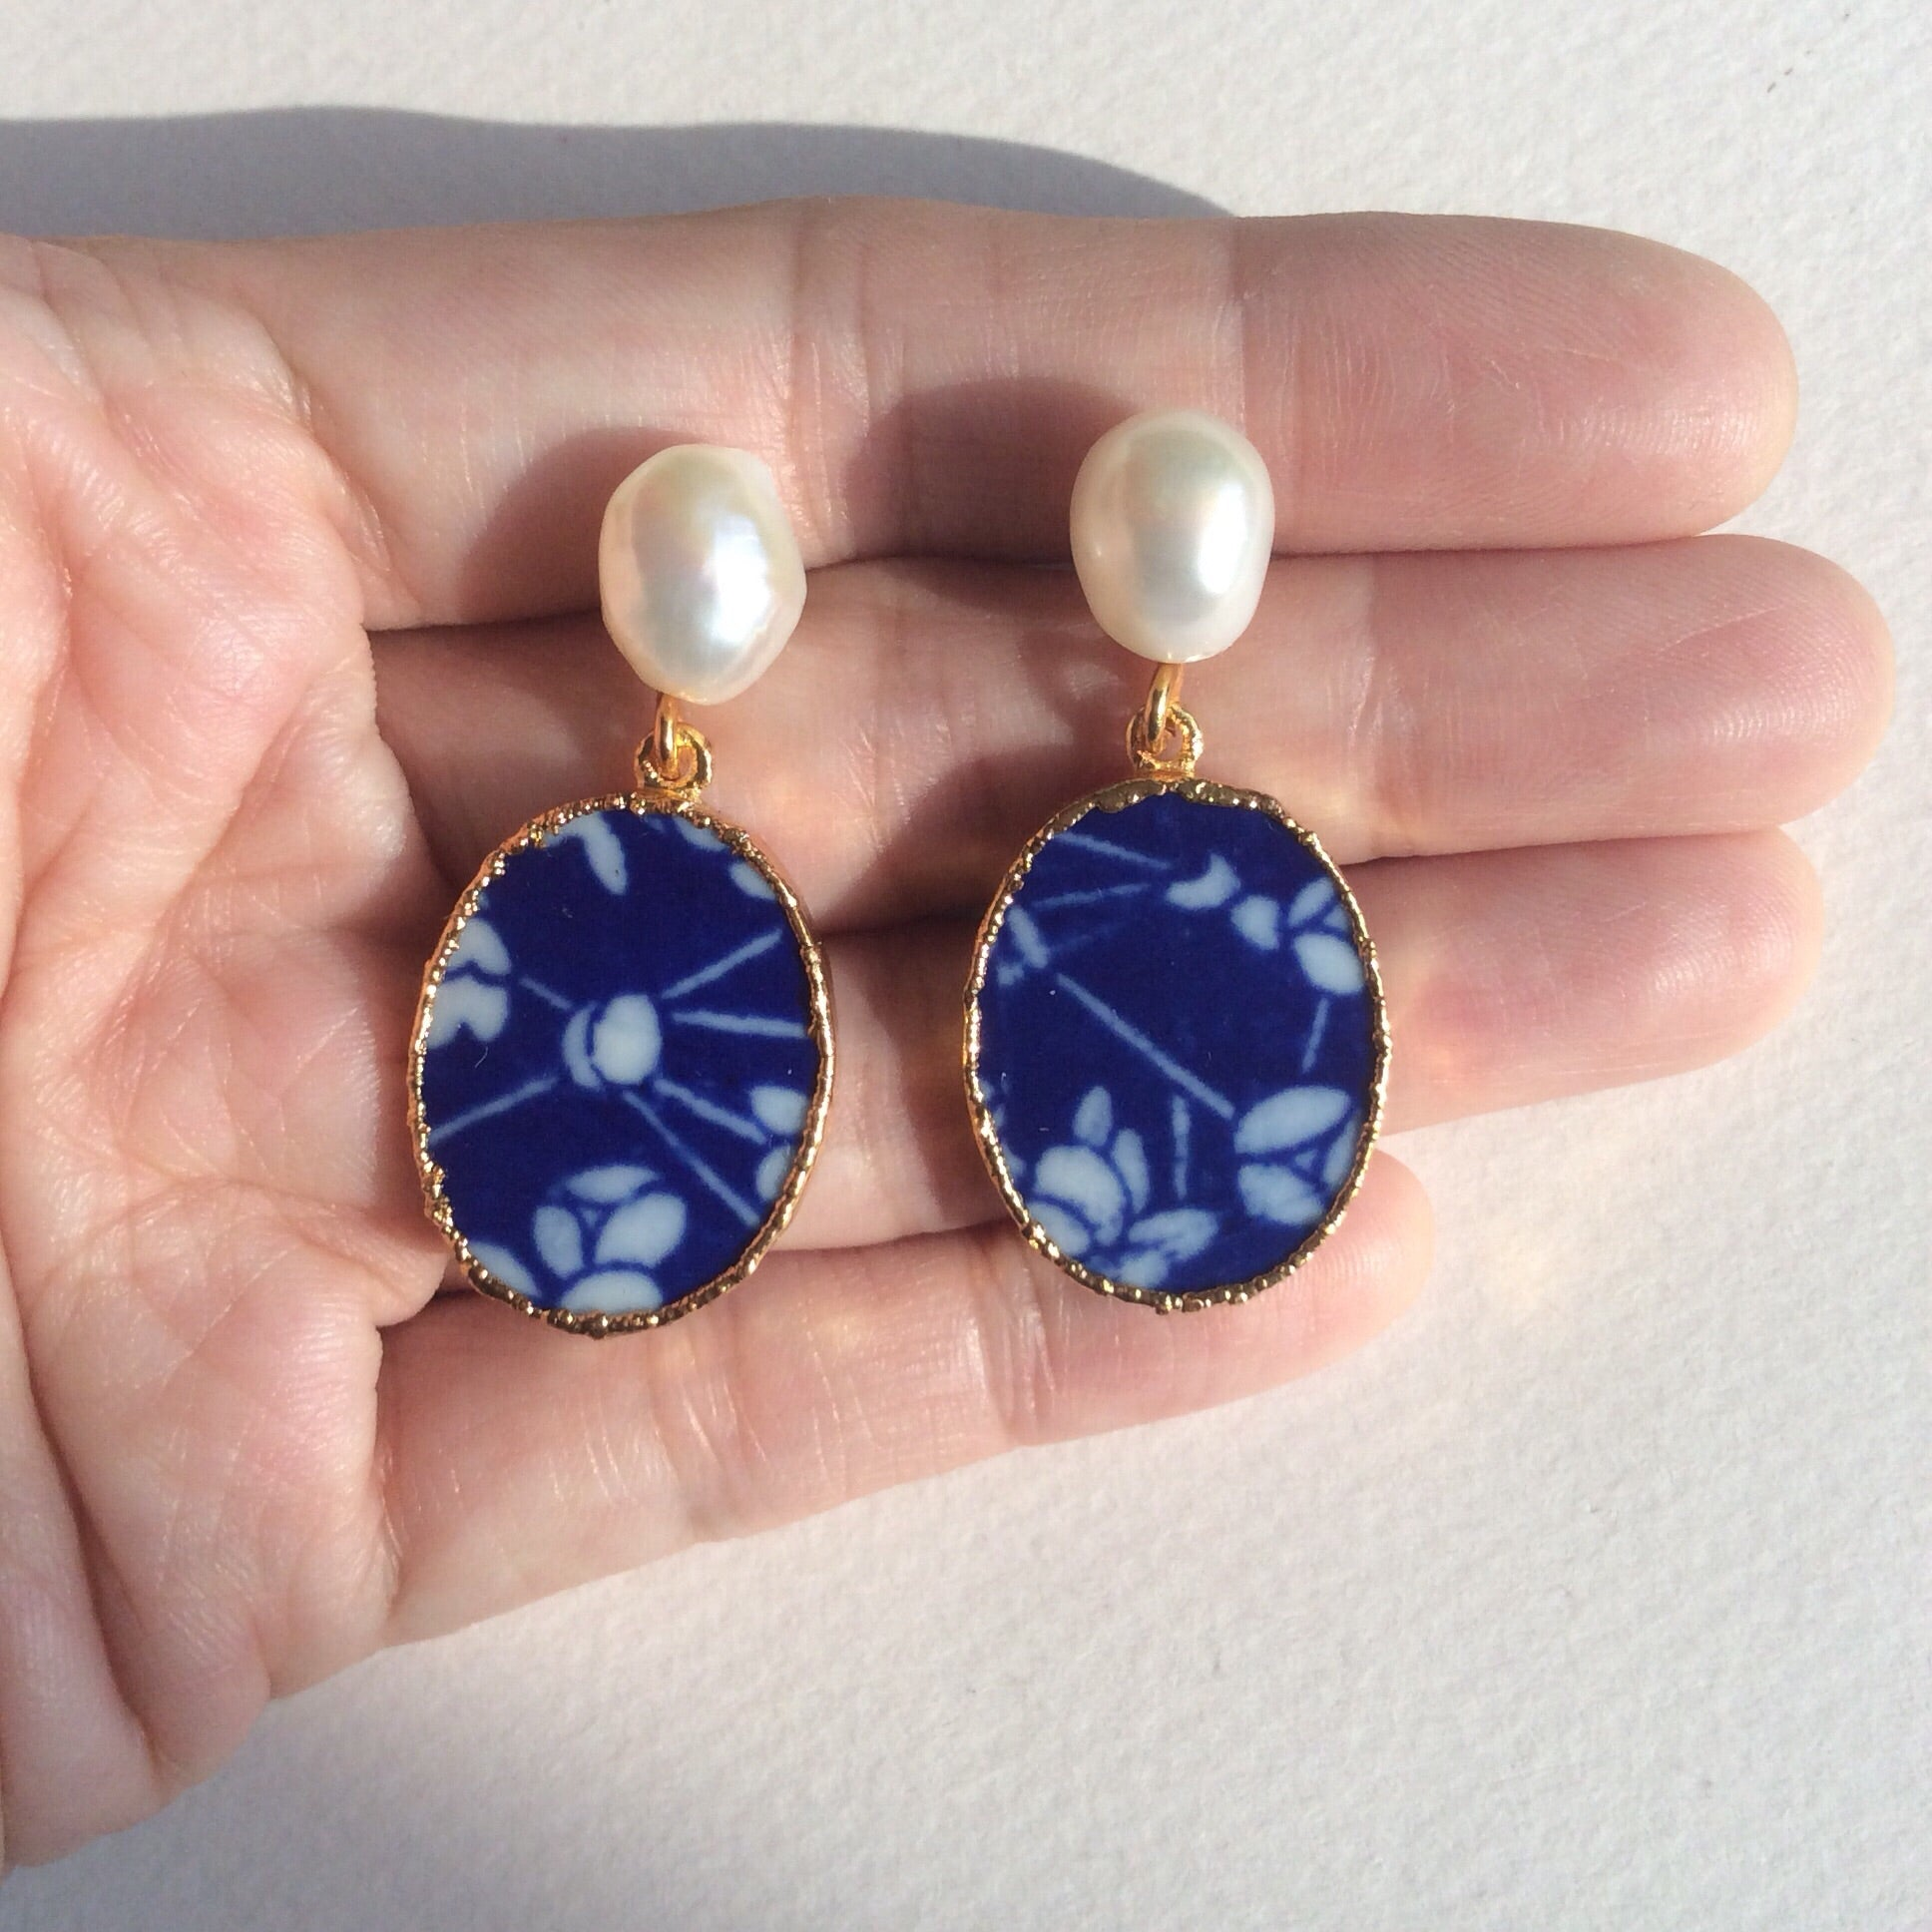 3 Friends of winter porcelain earrings